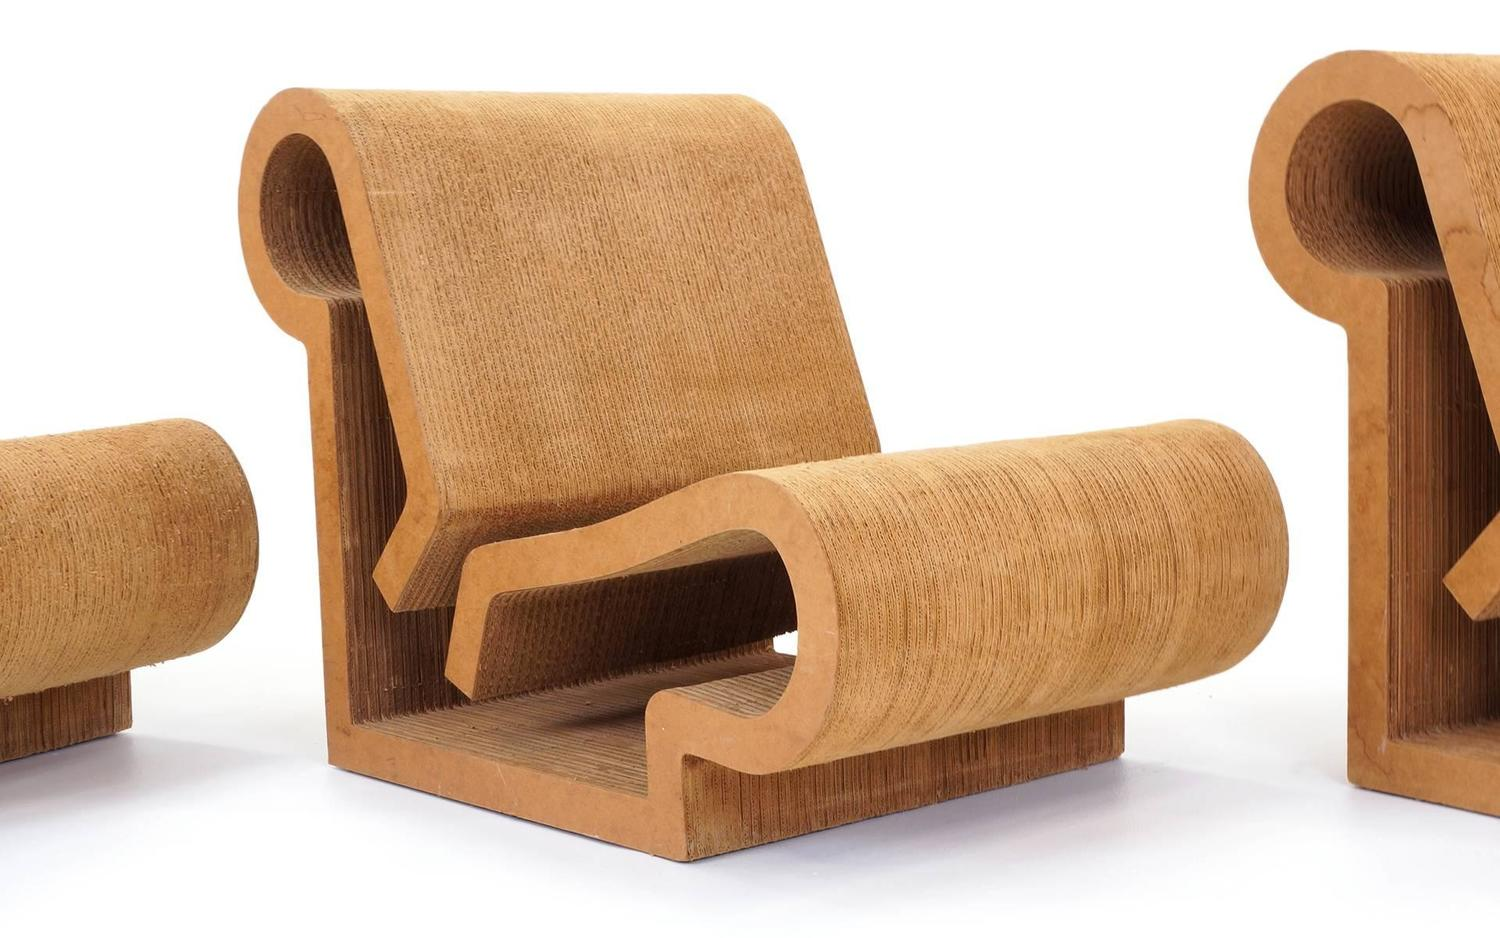 Rare Original Frank Gehry Easy Edges Cardboard Contour Chairs At 1stdibs